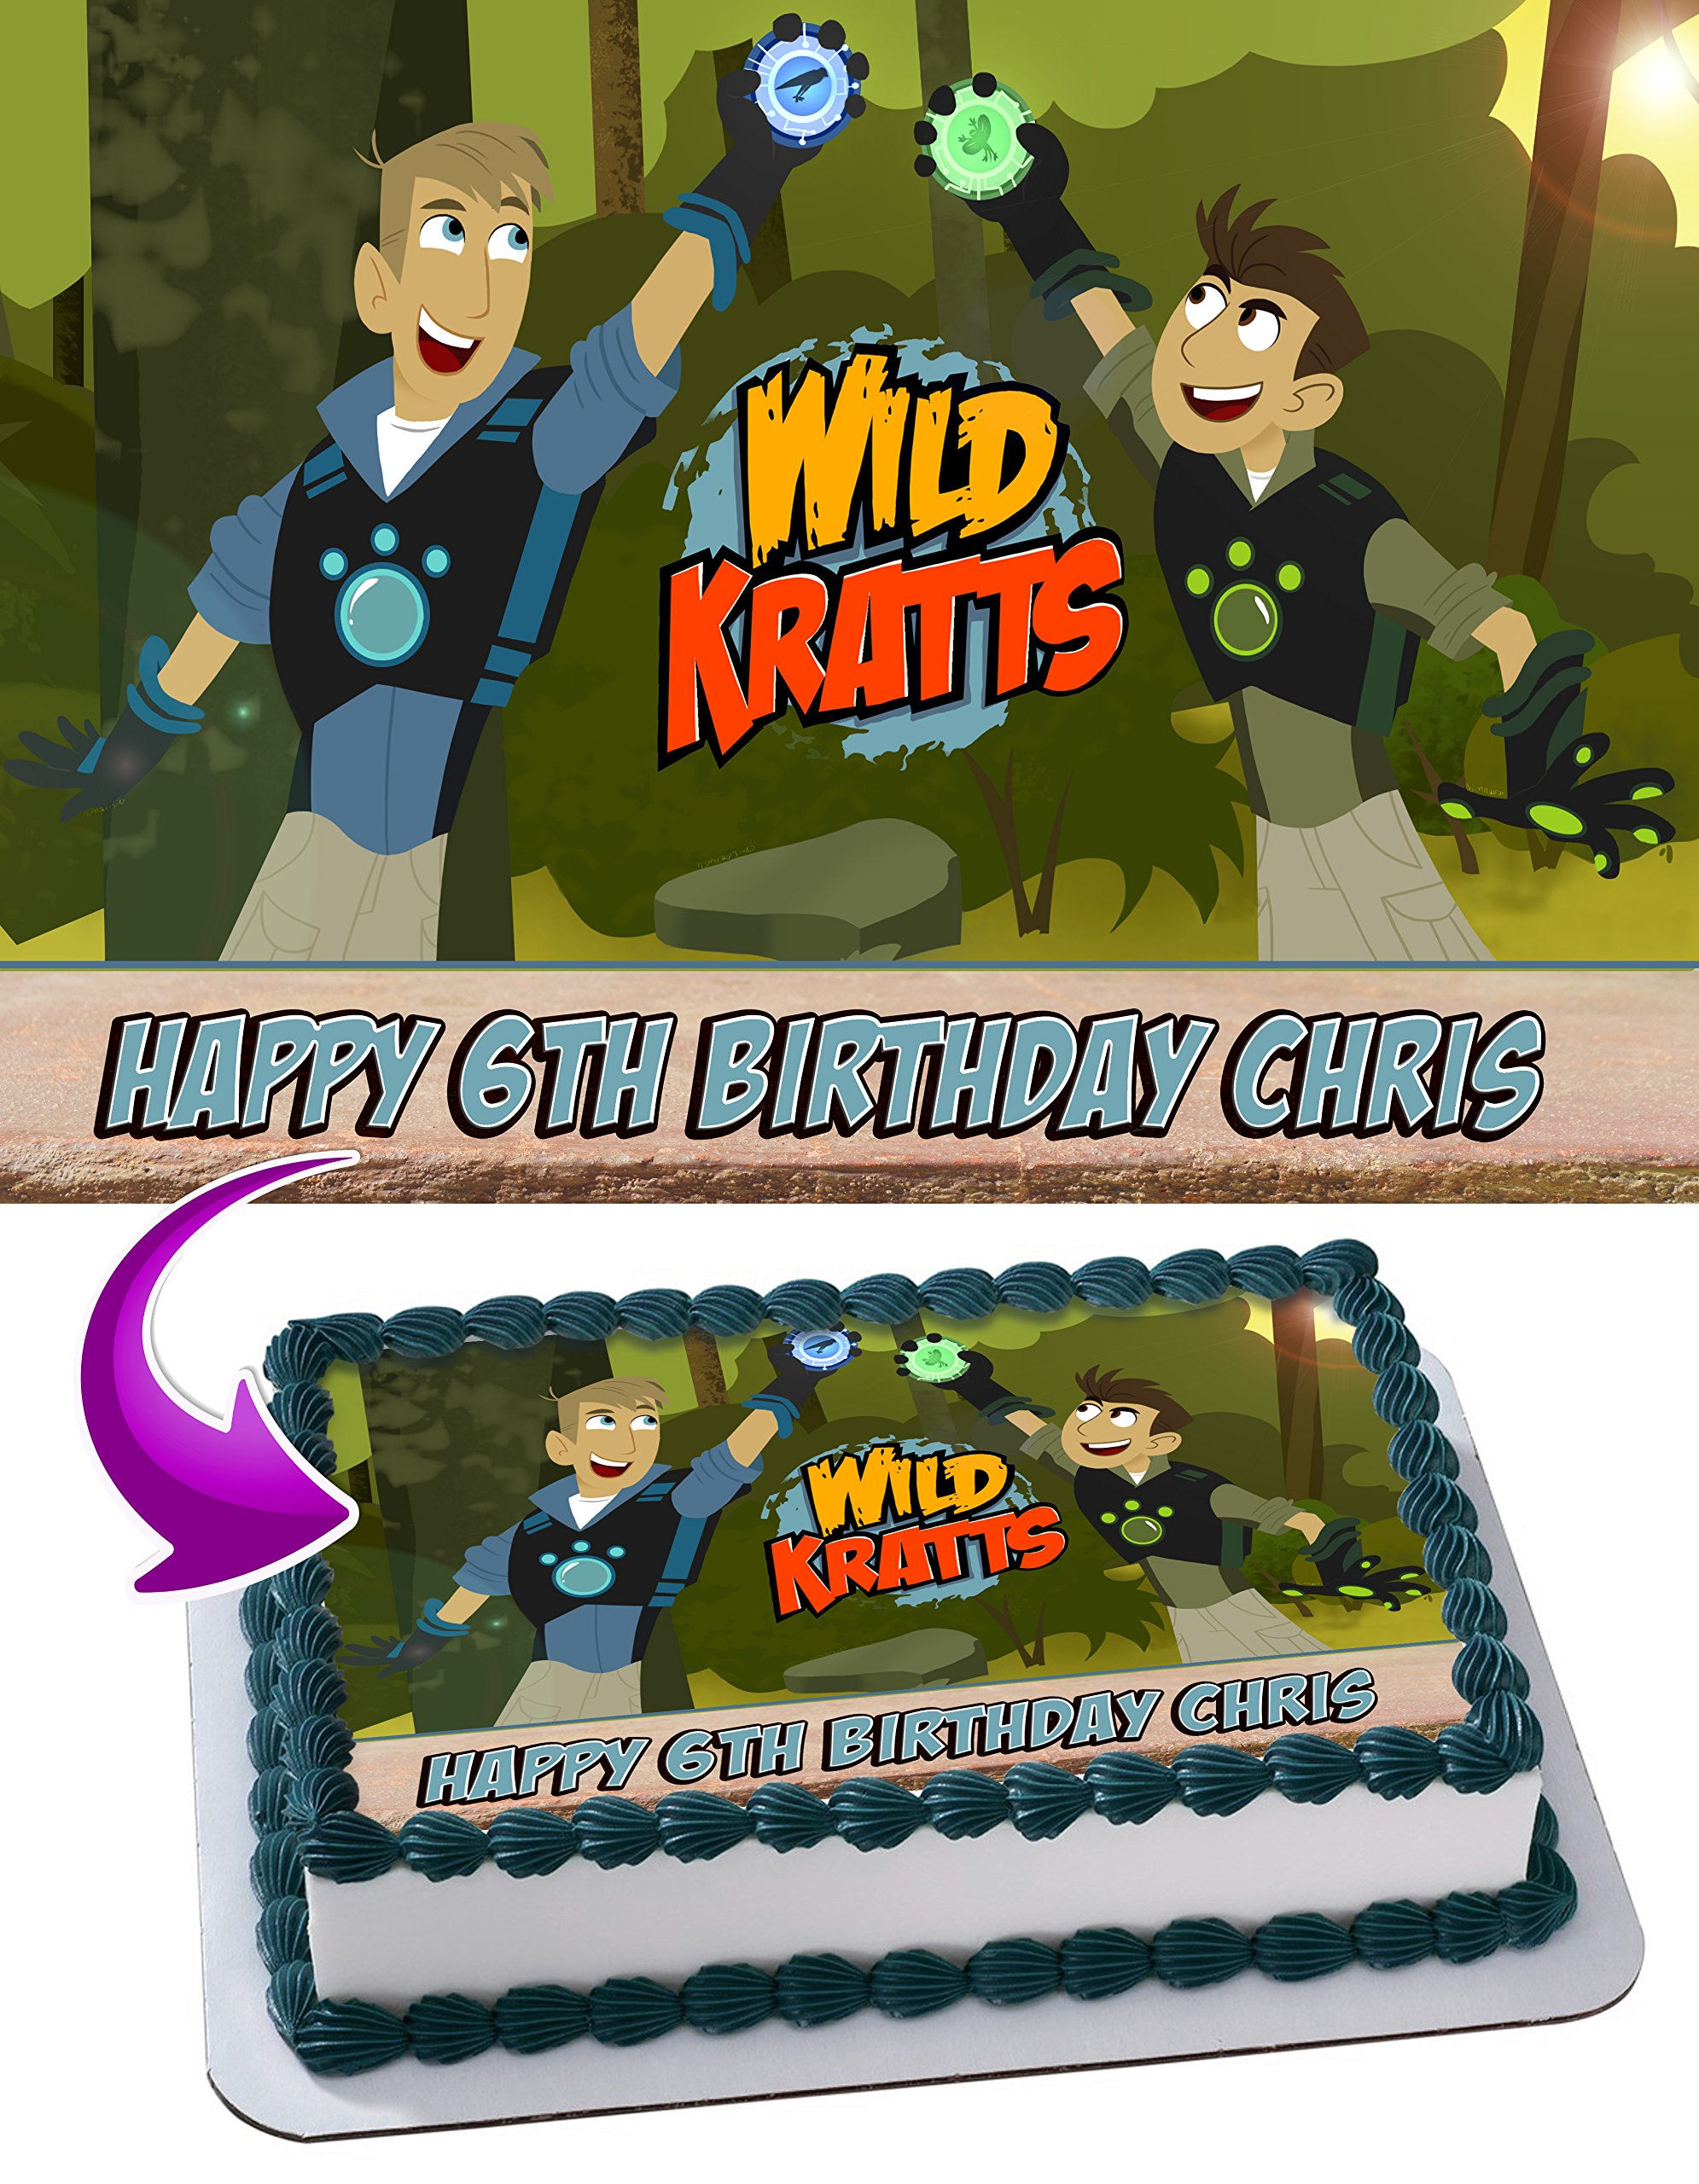 Wild Kratts Edible Image Cake Topper Personalized Icing Sugar Paper A4 Sheet Edible Frosting Photo Cake 1/4 ~ Best Quality Edible Image for cake